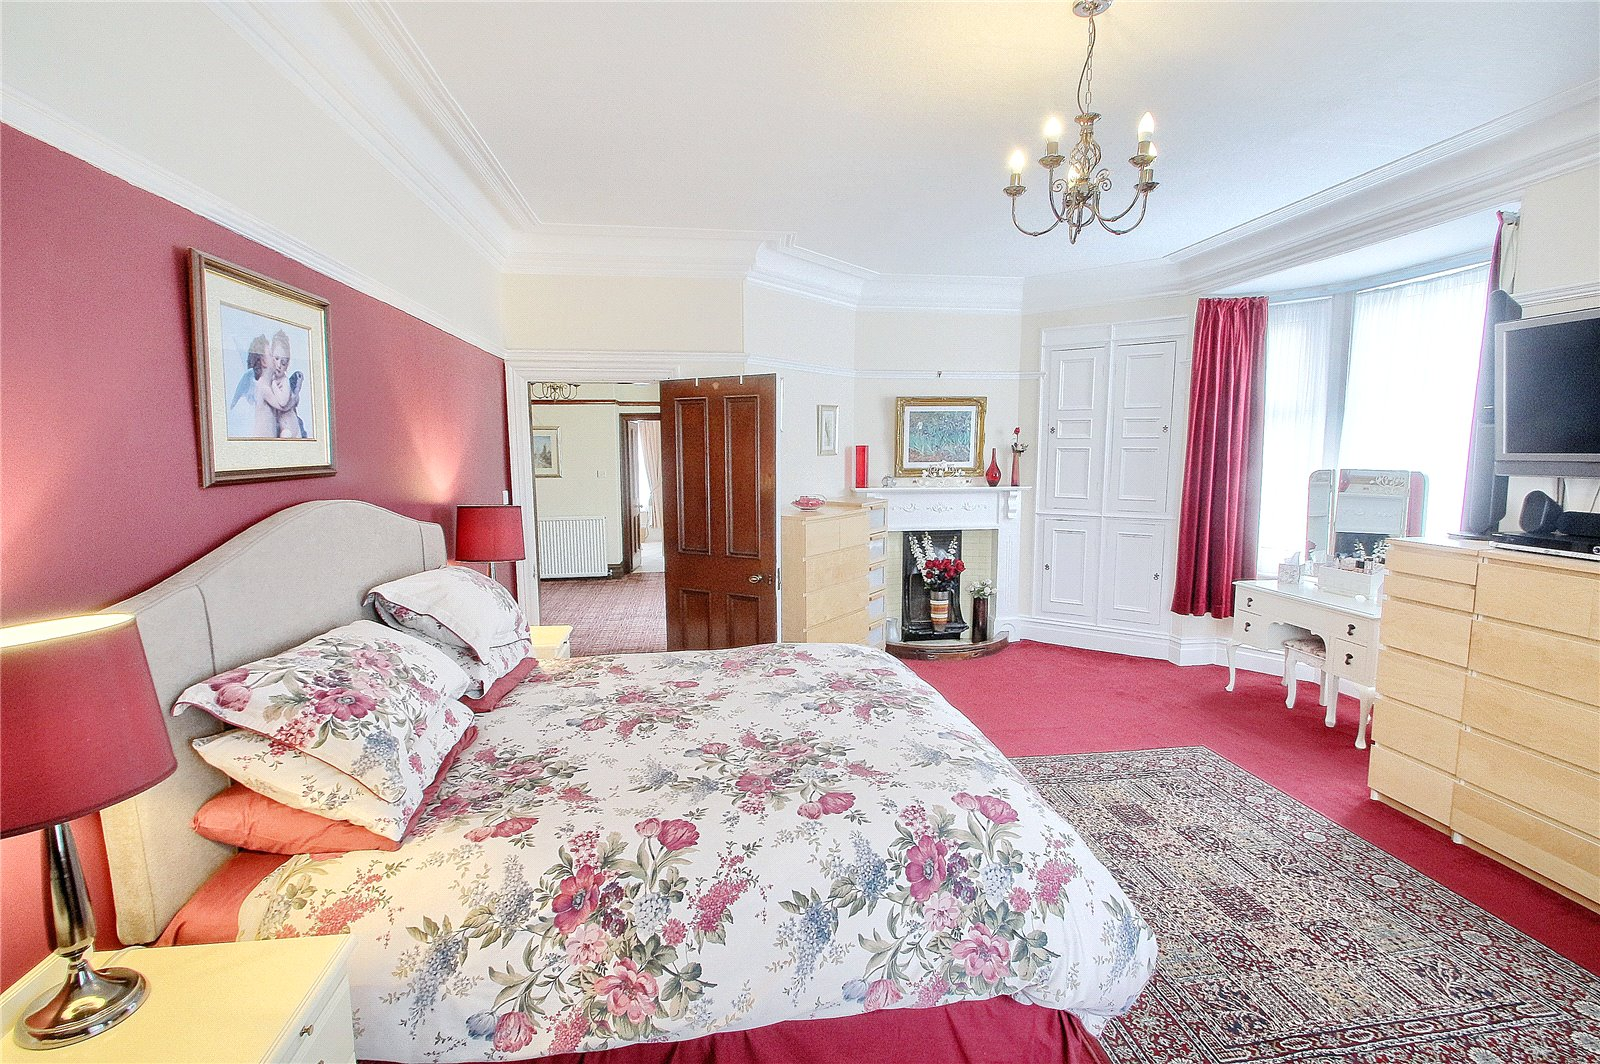 7 bed house for sale in Richmond Road, Stockton-on-Tees  - Property Image 11